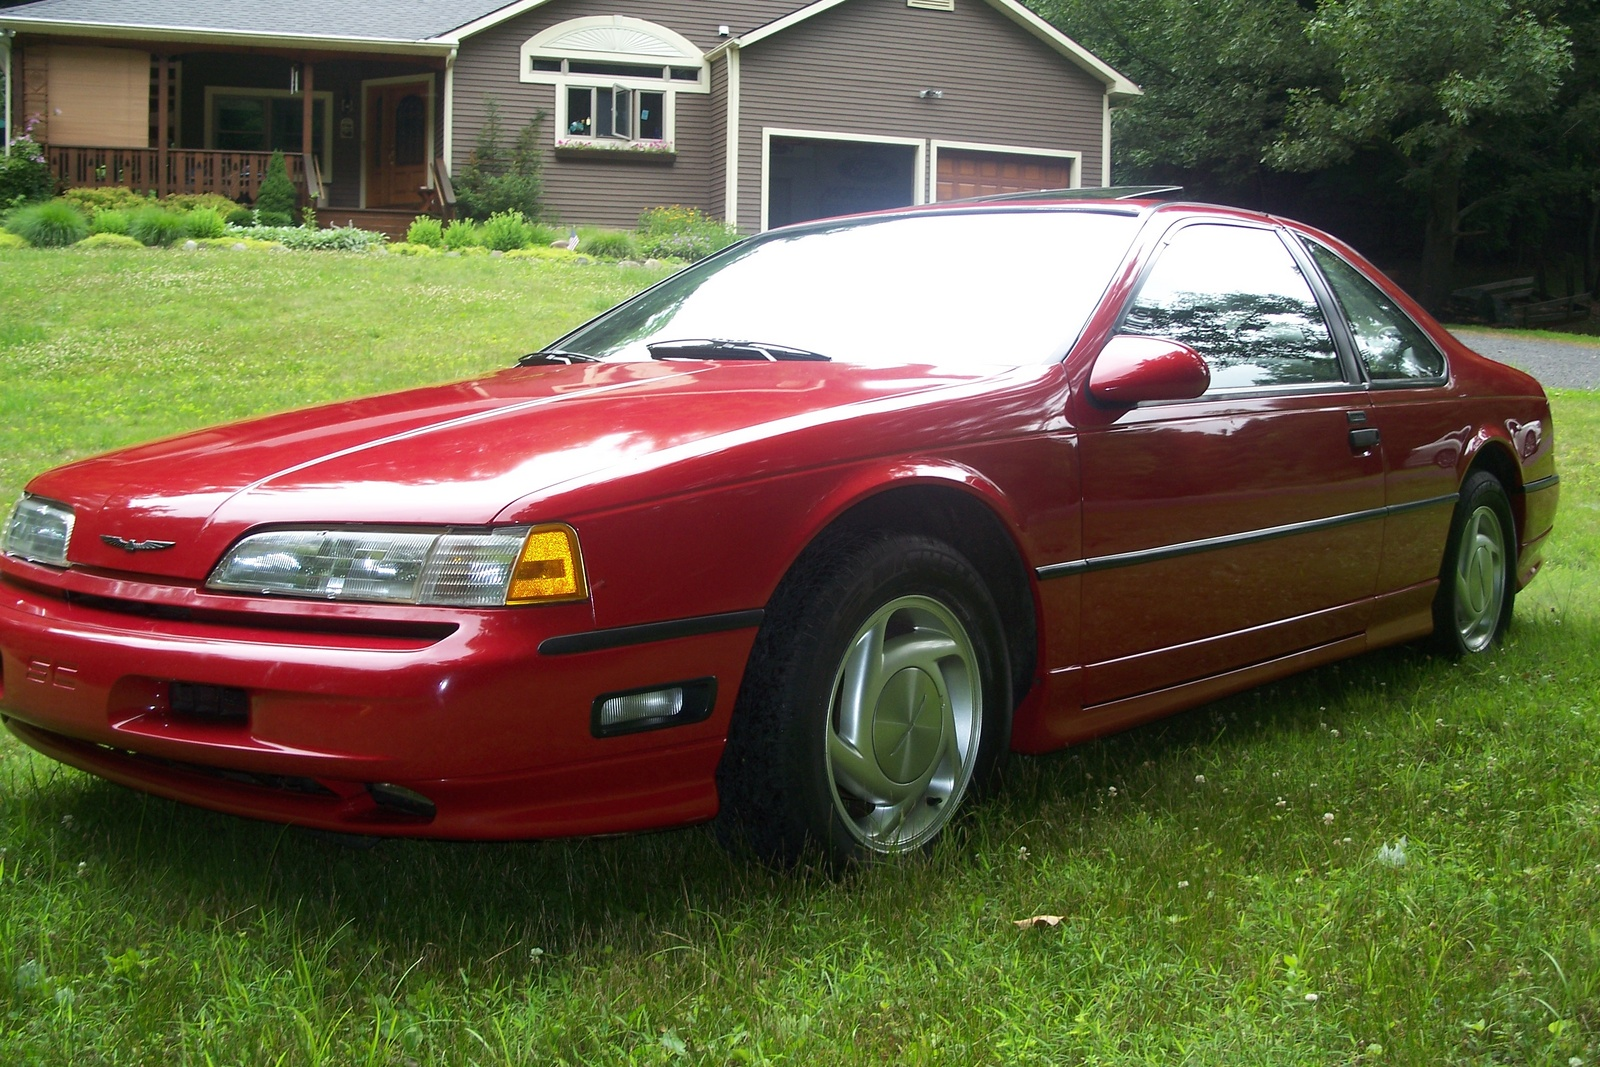 Ford Thunderbird 1989 photo - 4